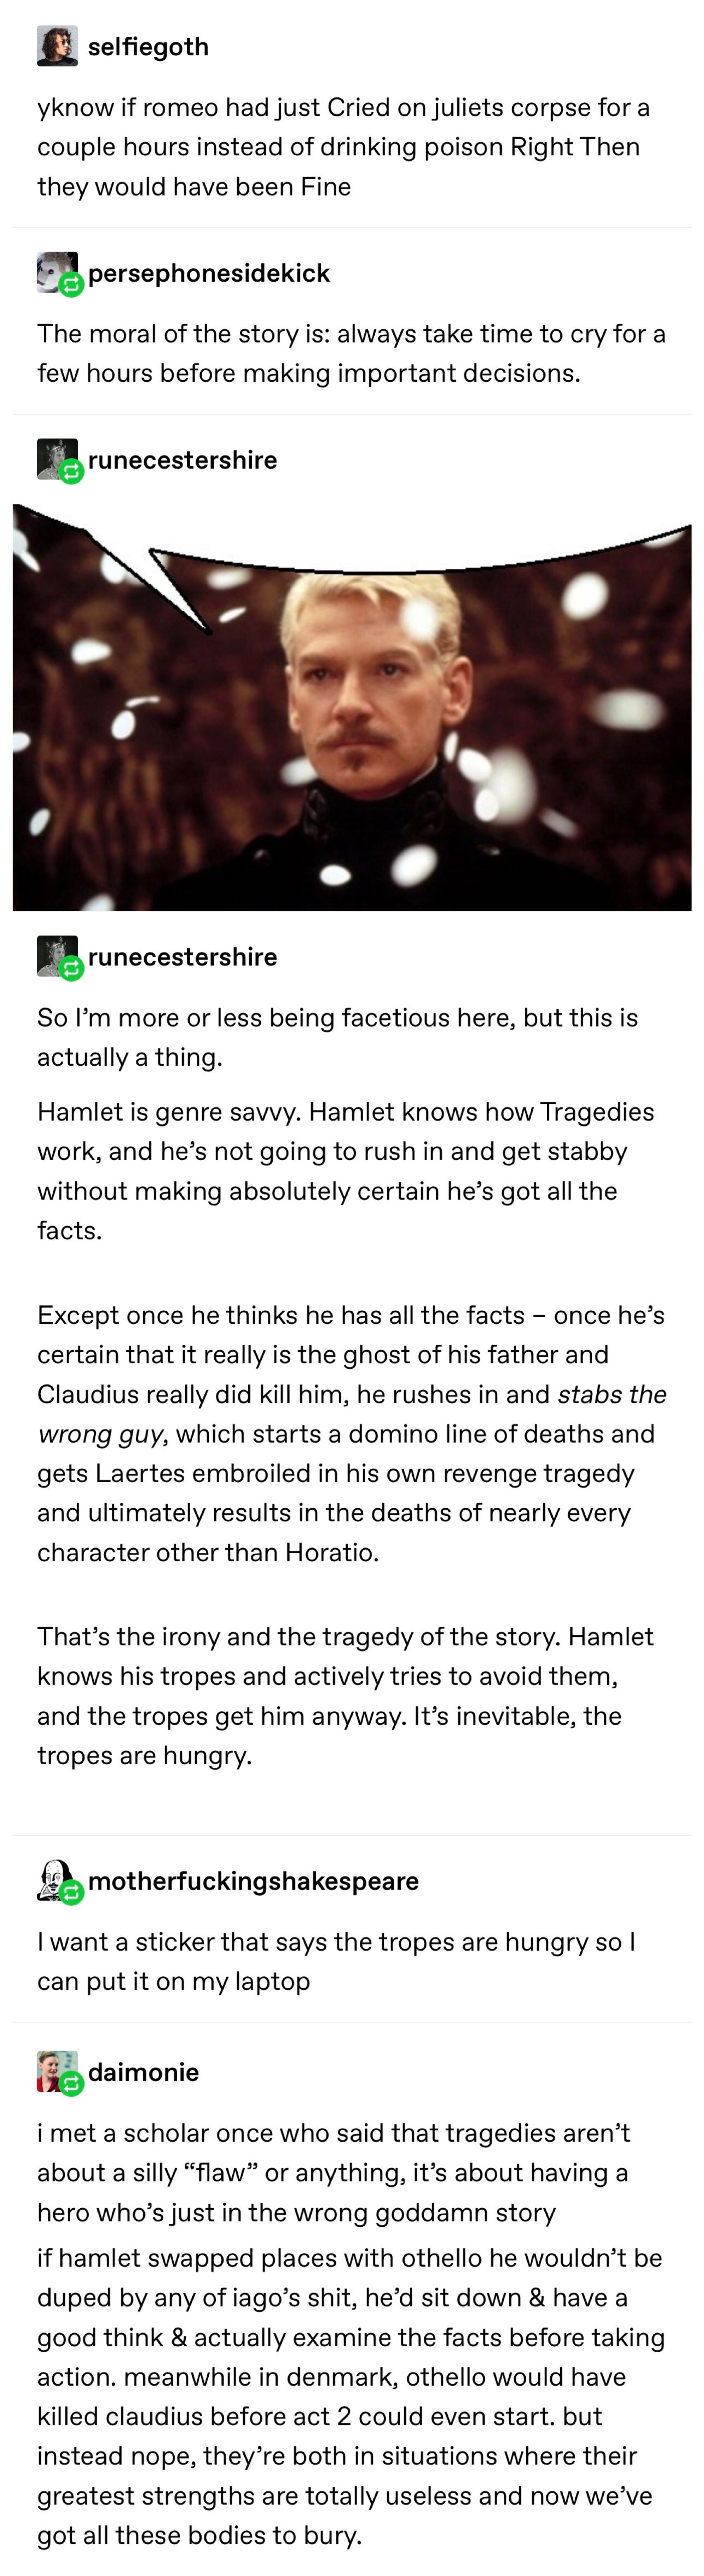 The Tropes Are Hungry And The Hero S In The Wrong Story In 2020 Writing Writing Inspiration Memes